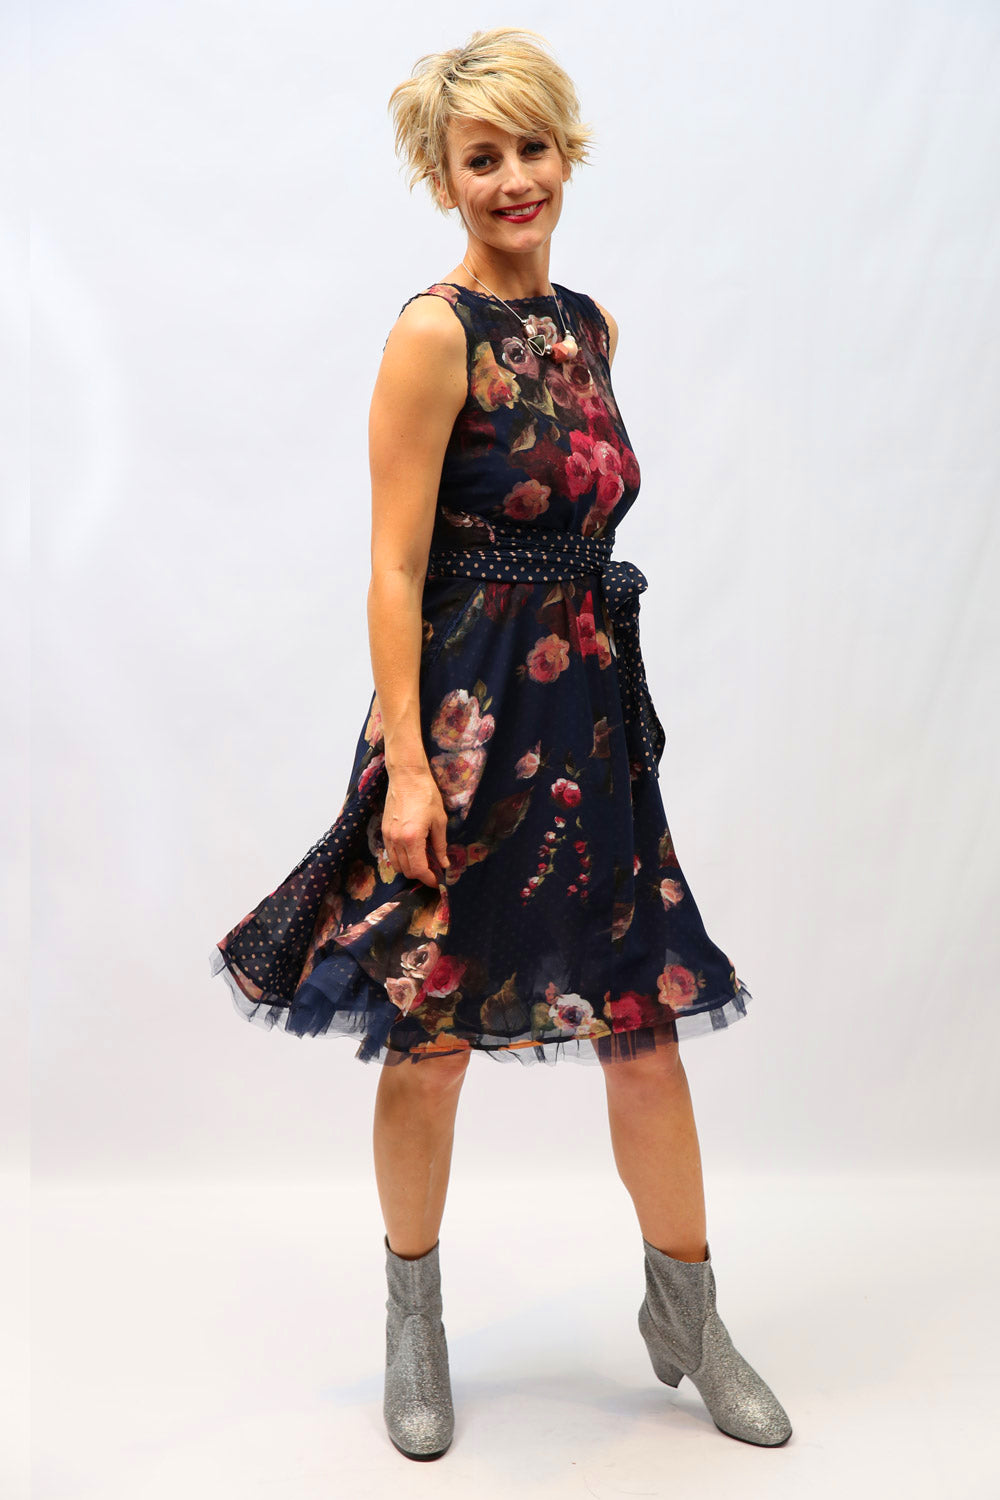 Abigail FlipIt | Wrap Dress | Addicted to Life | New Zealand Designer | New Zealand Fashion | Annah Stretton / Floral Dresses NZ / Floral Summer Dresses NZ / Designer NZ /